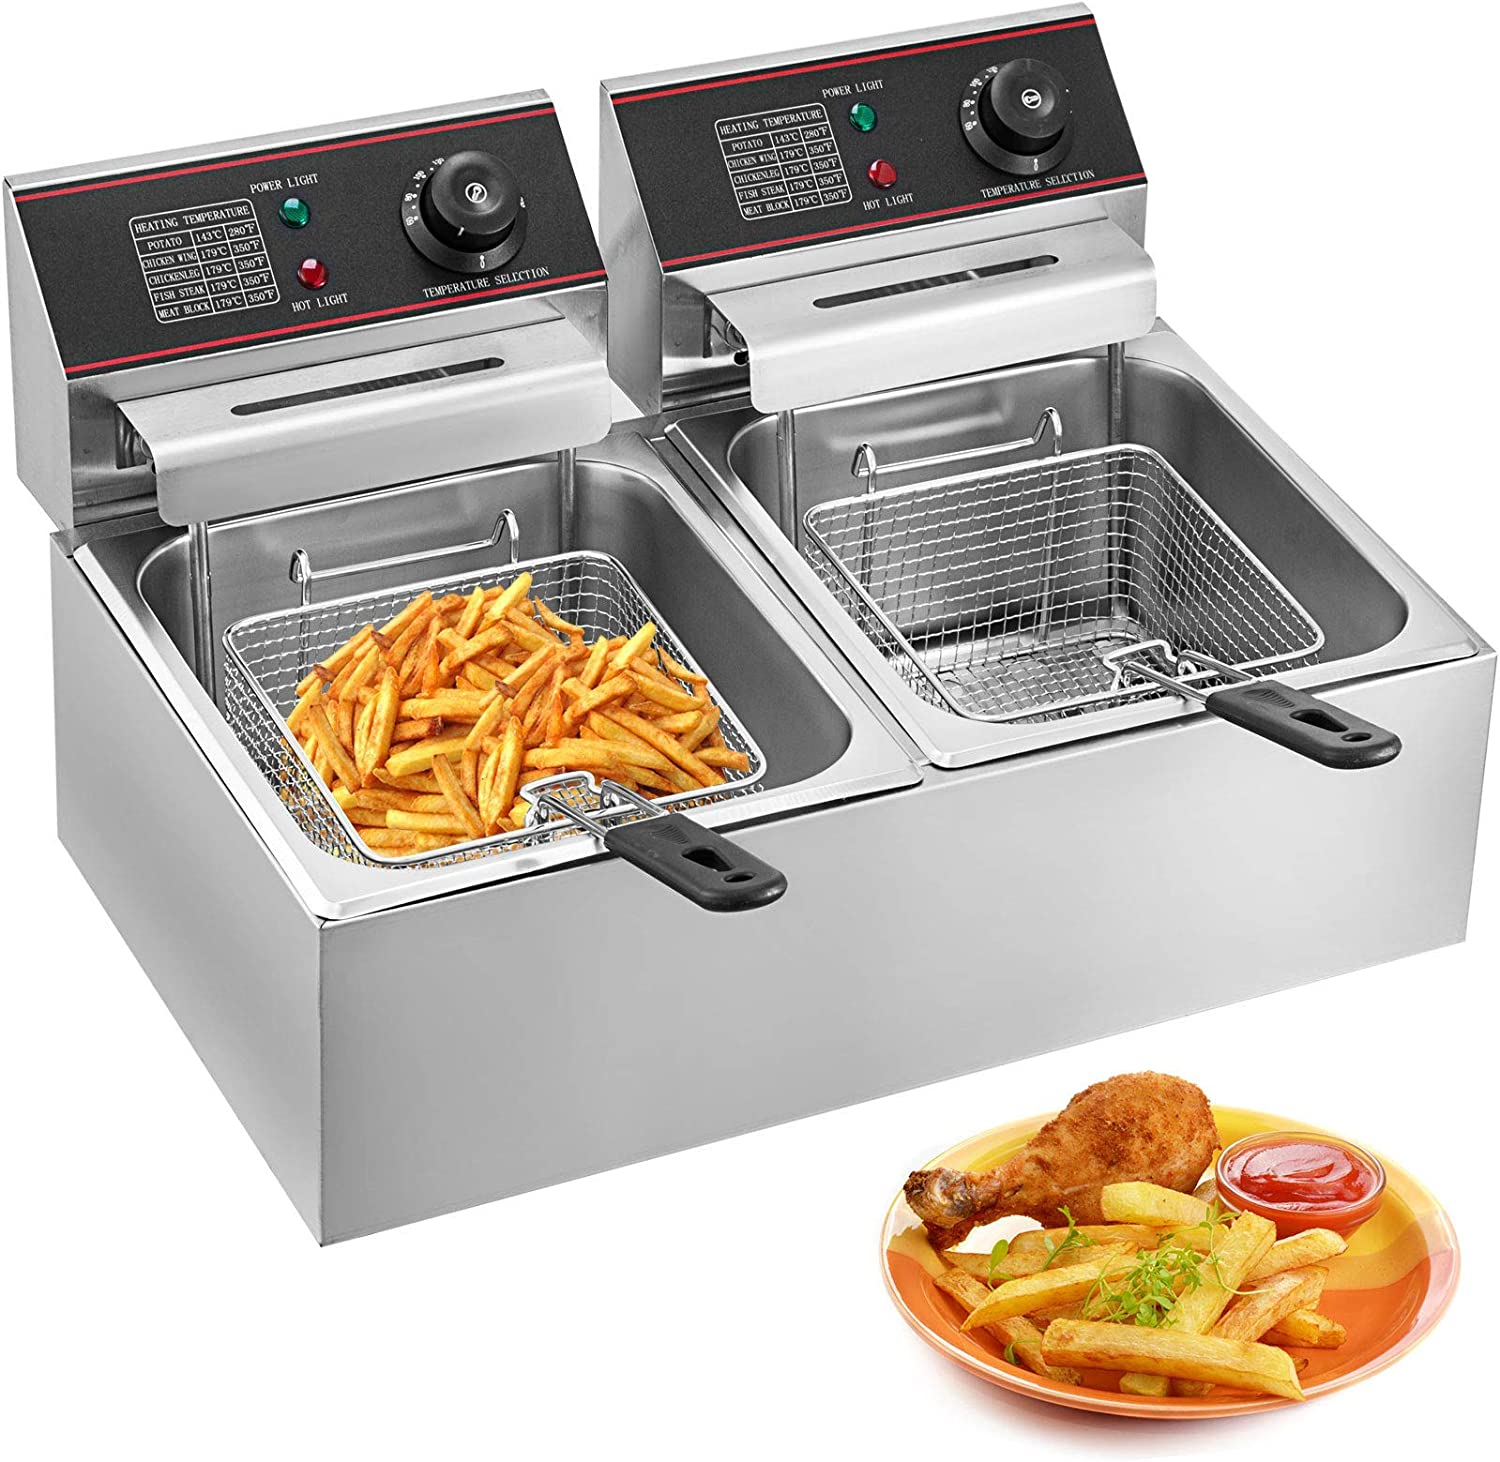 ZTBXQ Home Appliances Kitchen Tools Deep Fryer Commercial Electric Fryer 20L 3000W Twin Basket Electric Dual Tank Countertop Stainless Steel French Fry (20L Dual Tank YB-102V)